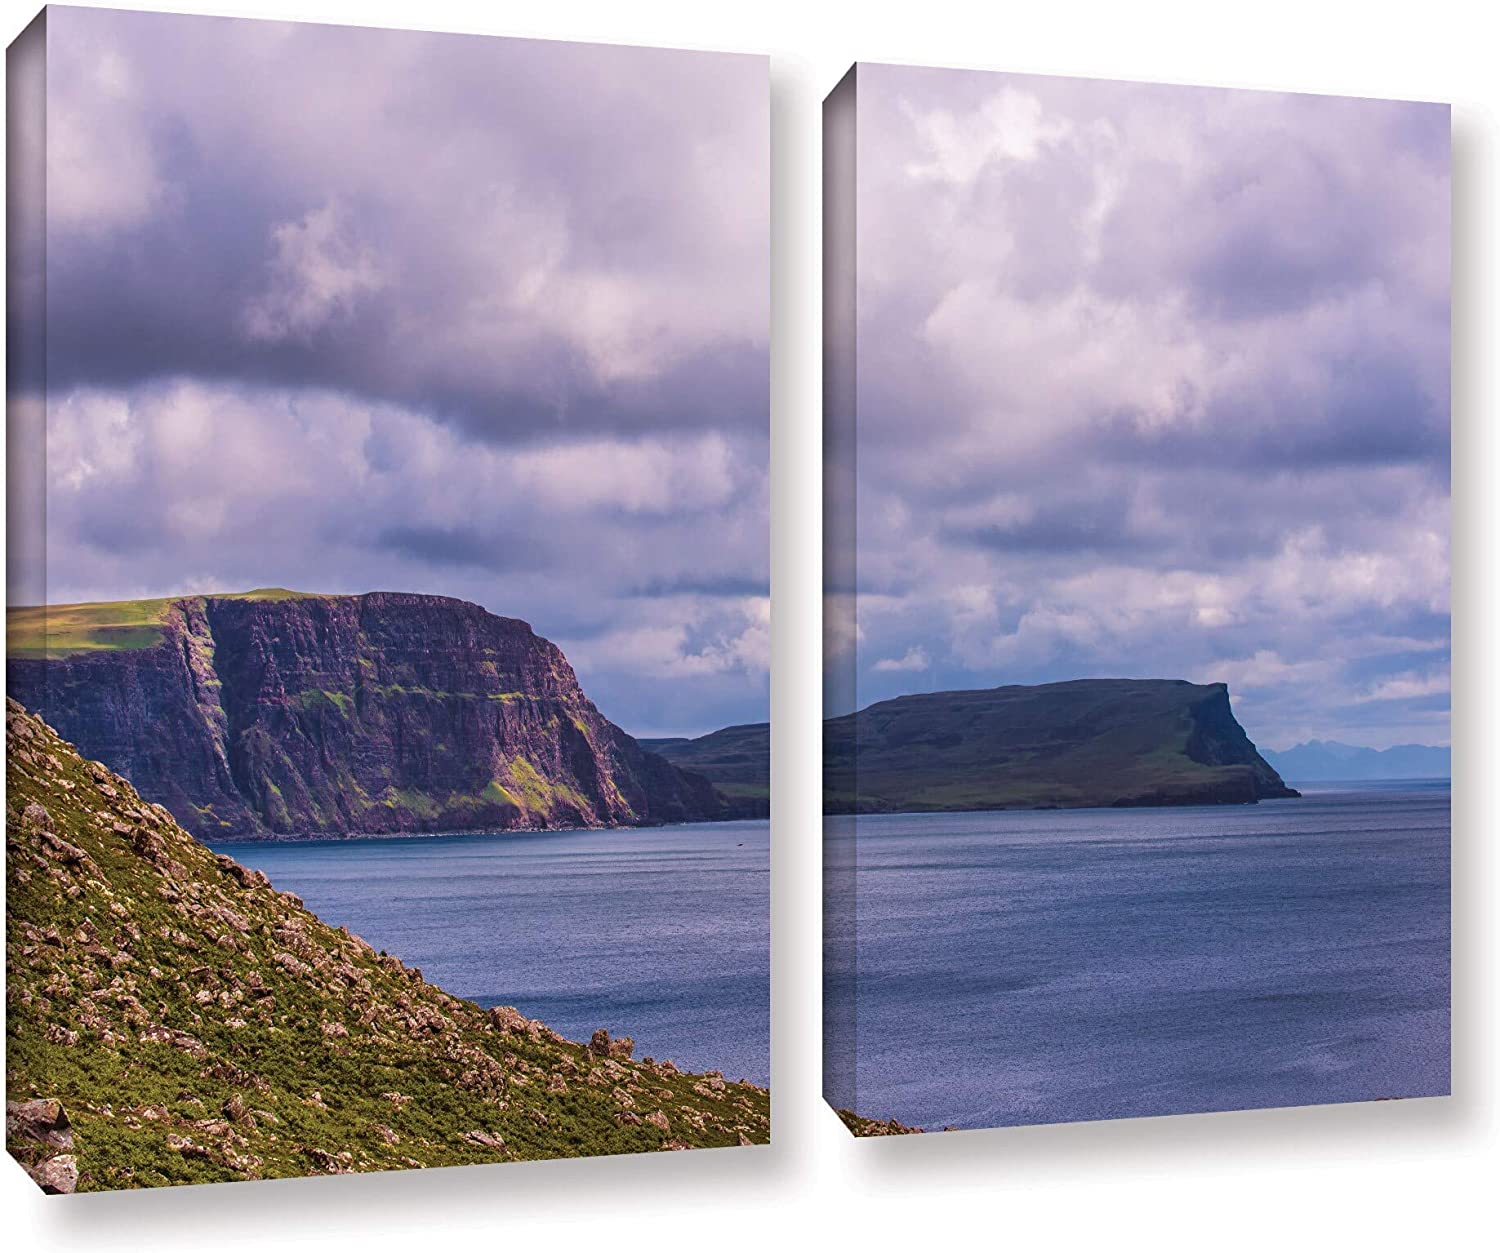 ArtWall Max 79% OFF Steve Ainsworth's 'Above The 2-Piece Wrapp Max 73% OFF Gallery Blue'